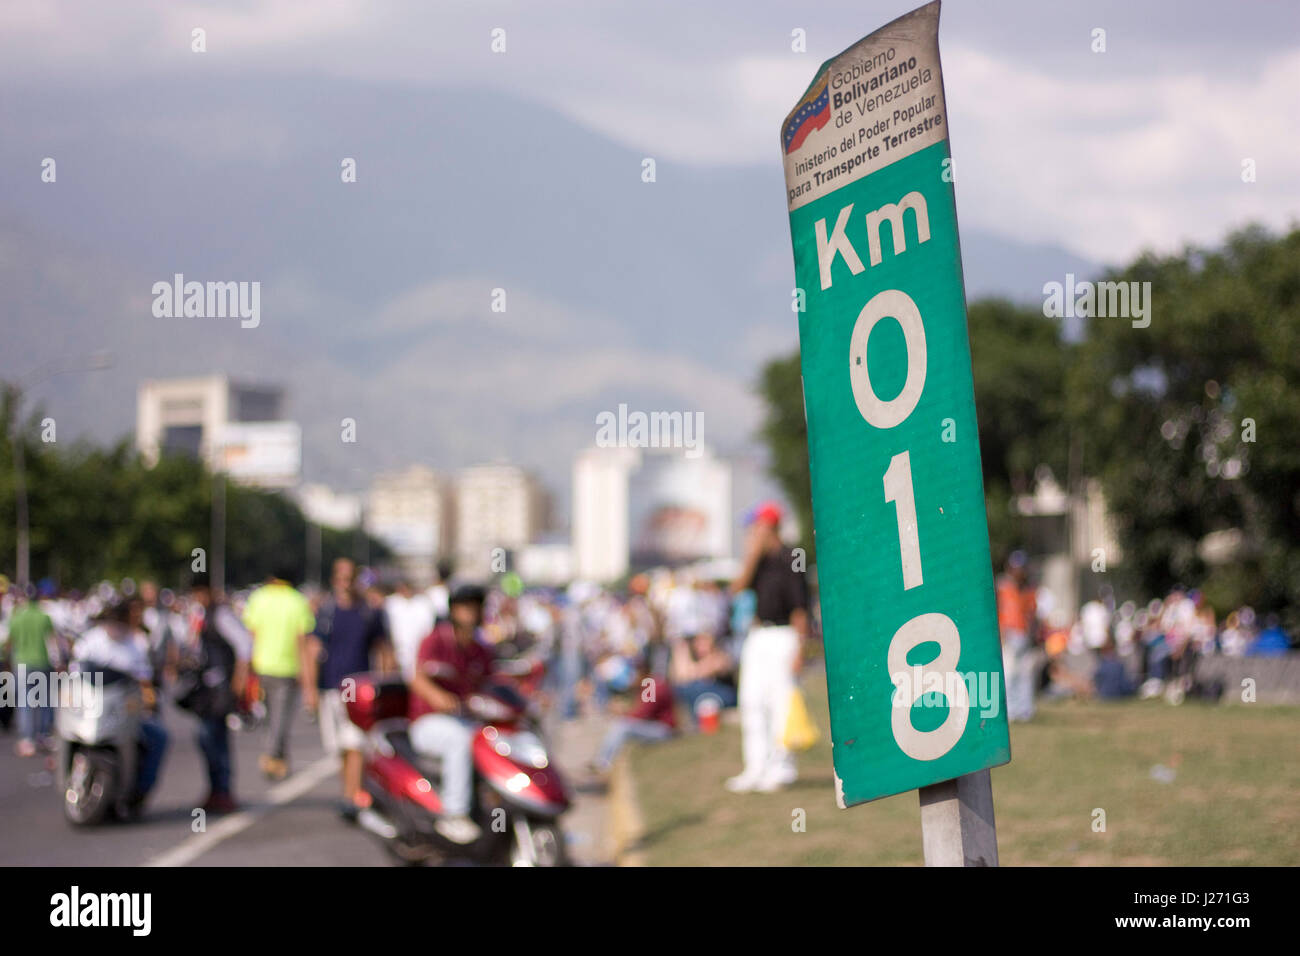 A protest in Caracas against the government of Nicolas Maduro on a highway. - Stock Image